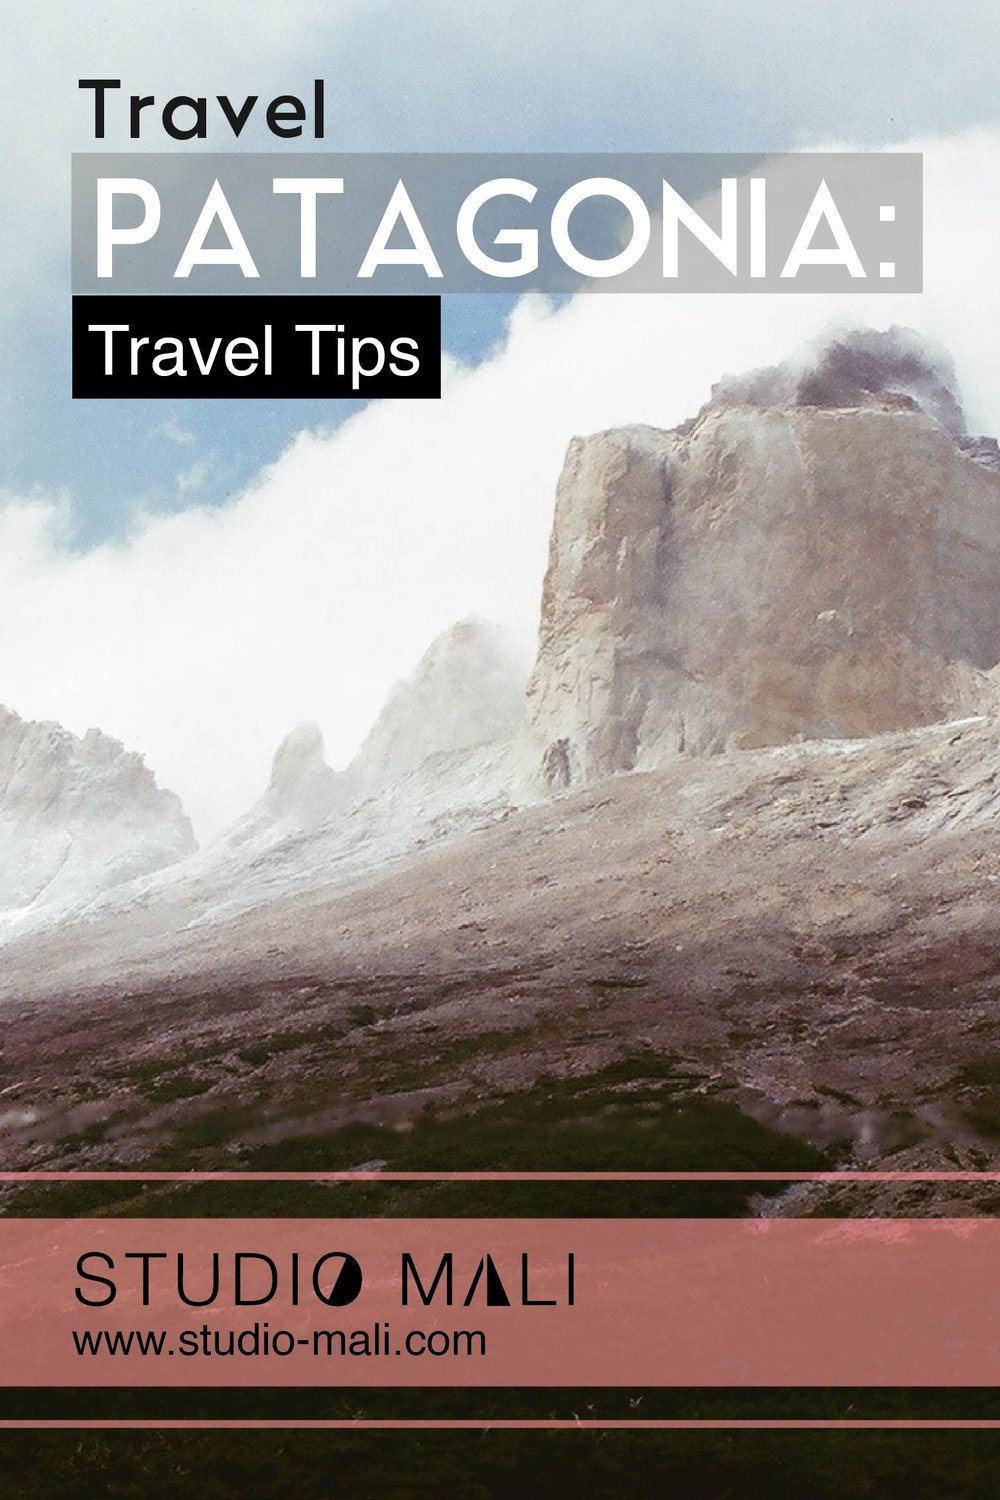 Patagonia - Travel Tips, by Studio Mali